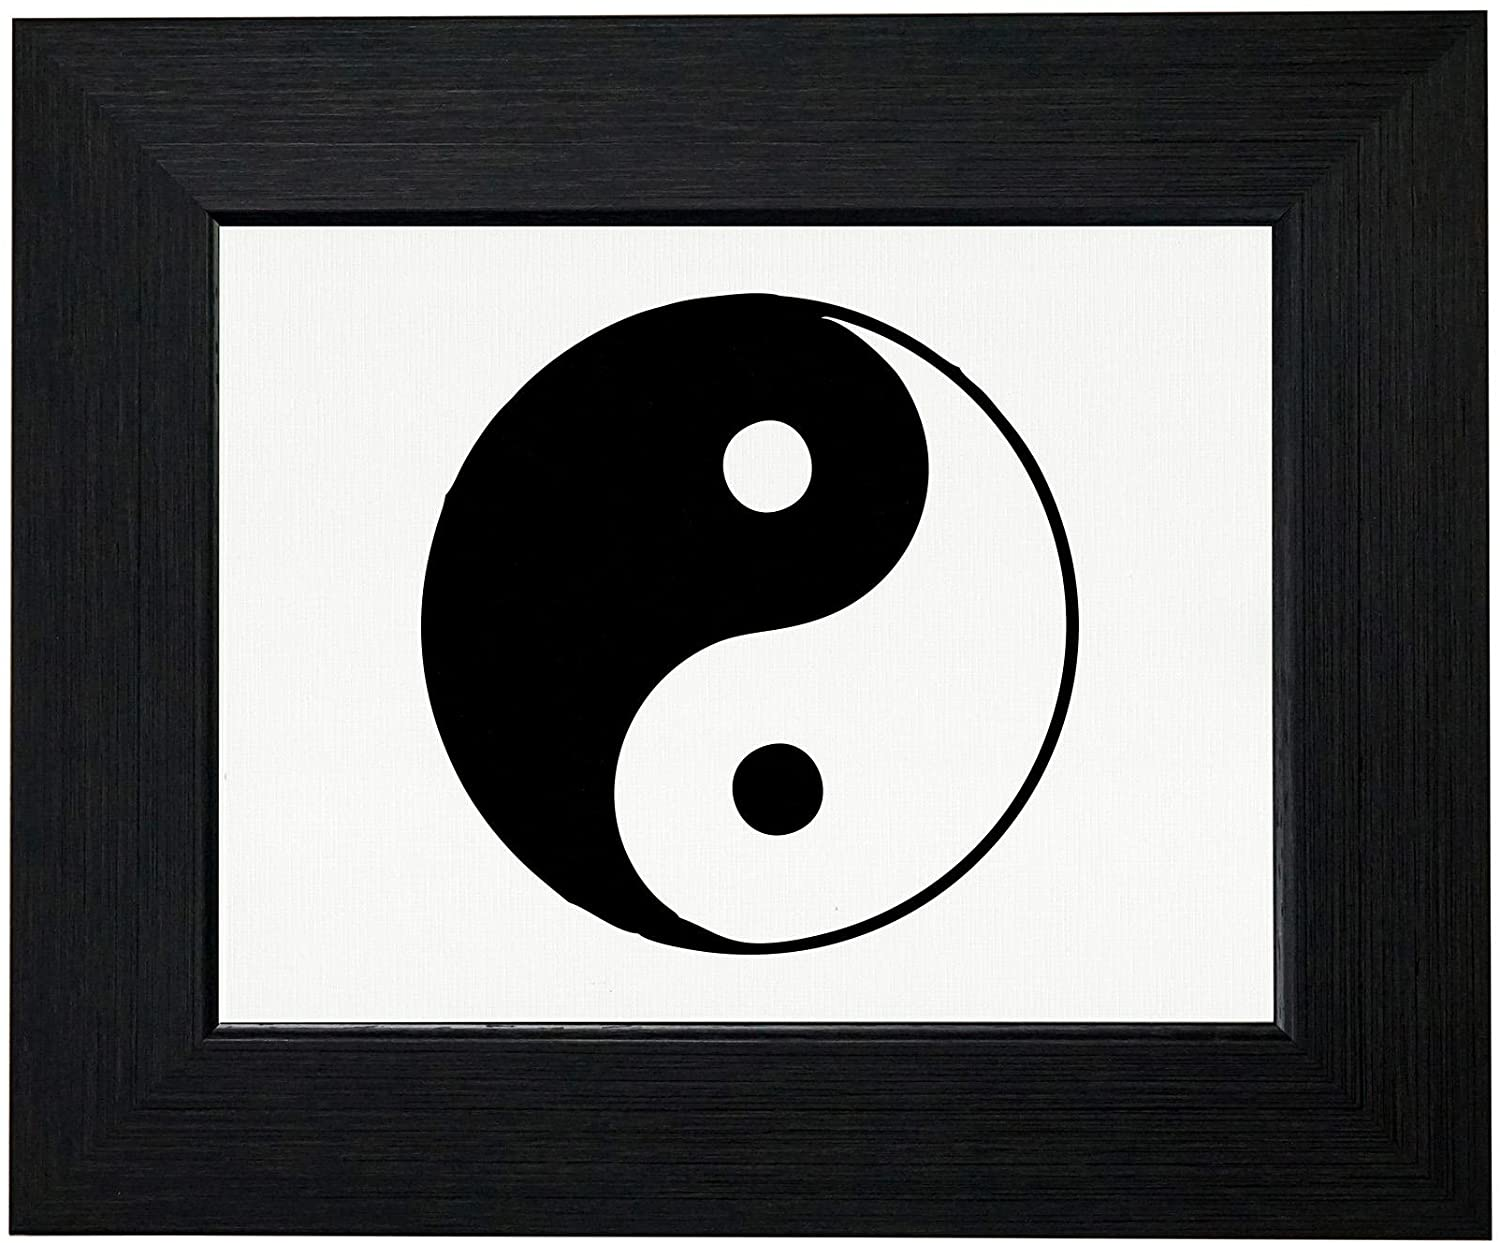 Royal Prints Yin & Yang - Chinese Philosophy Symbol for Natural Harmony Framed Print Poster Wall or Desk Mount Options